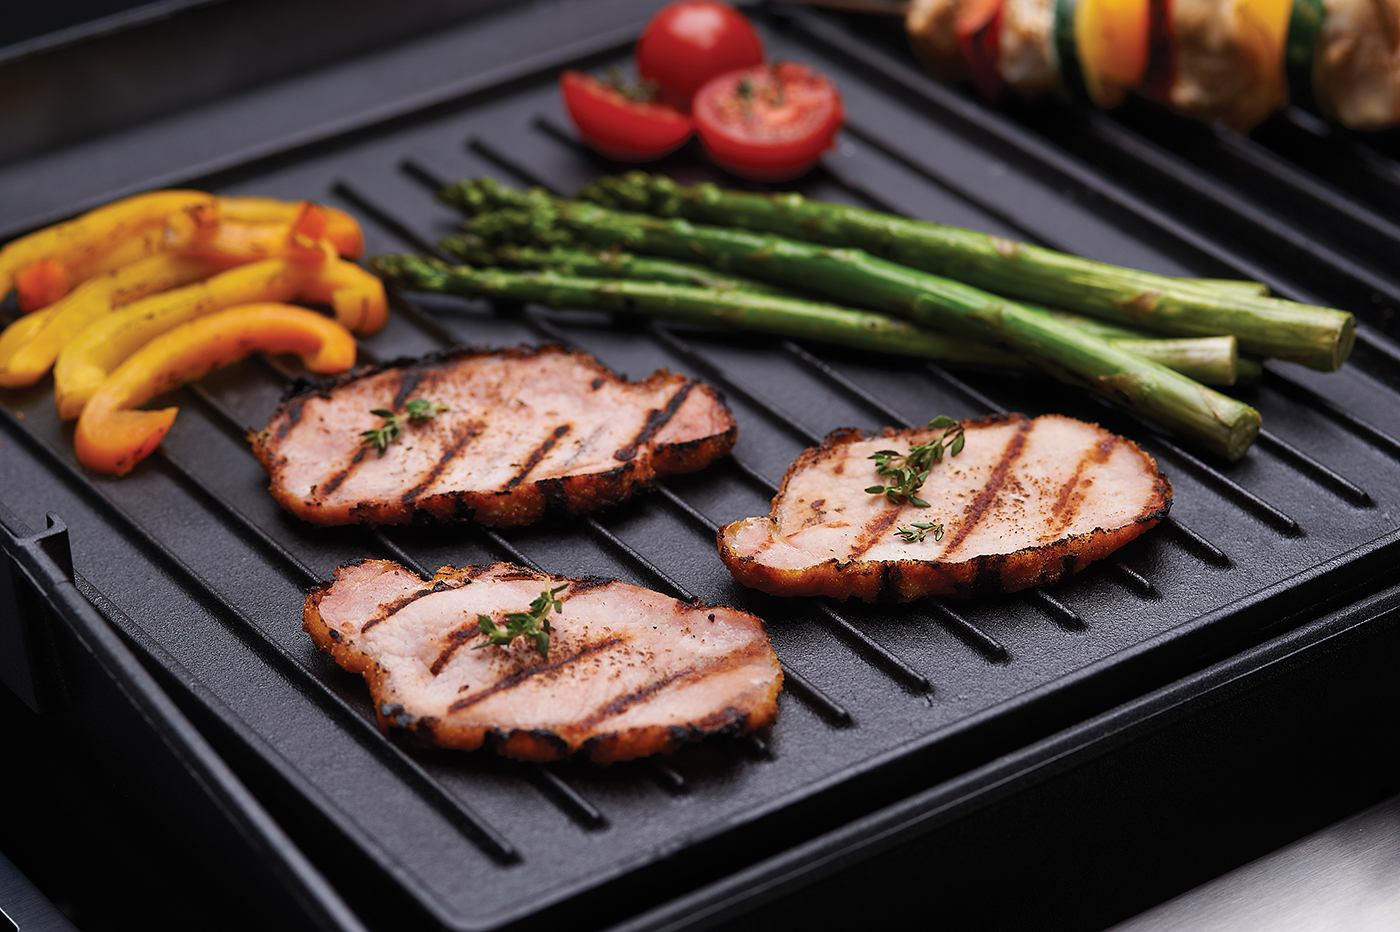 Landmann Holzkohlegrill 0840 Grill : Gusseisen grillplatte perfect gusseisen grill platte with